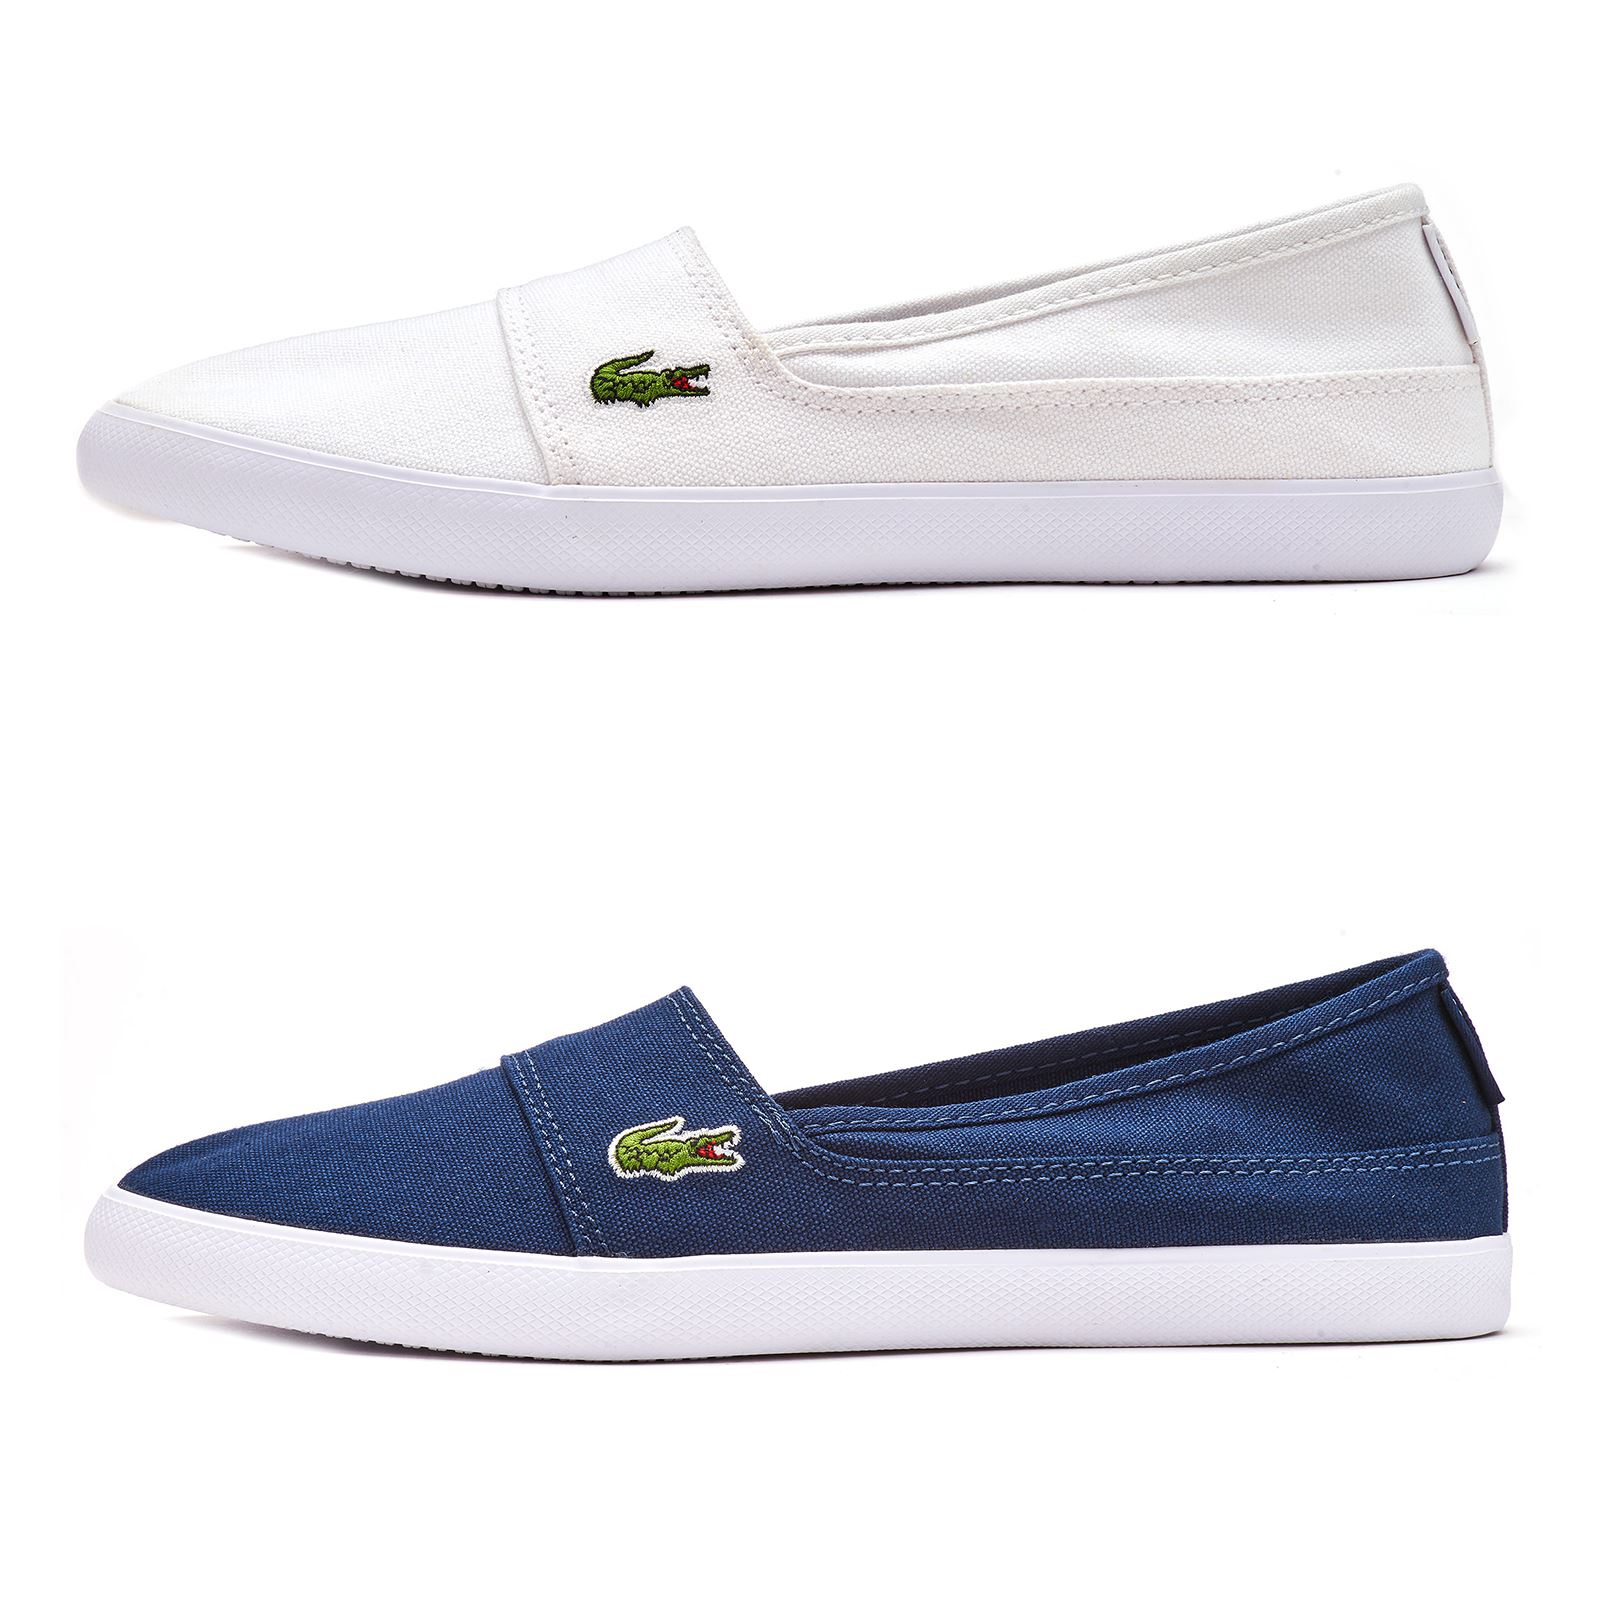 4264a56d9cb2 Details about Lacoste Marice BL 2 CFA Canvas Women Slip On Plimsolls  Trainers in Navy   White